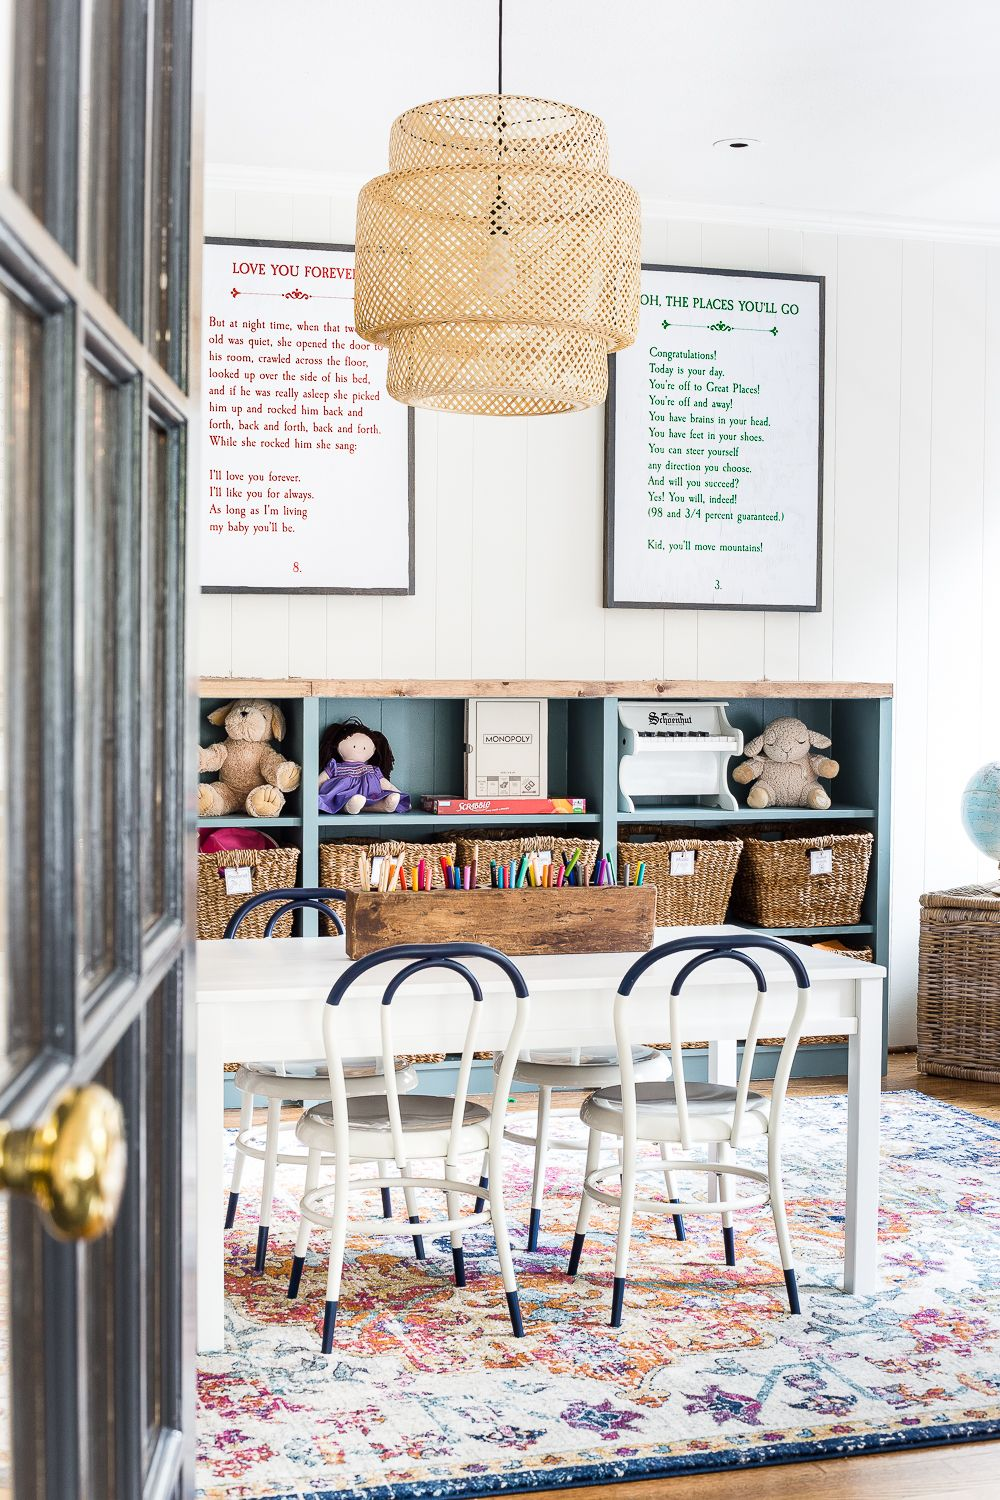 New Light And Furniture In The Playroom | Home Decor